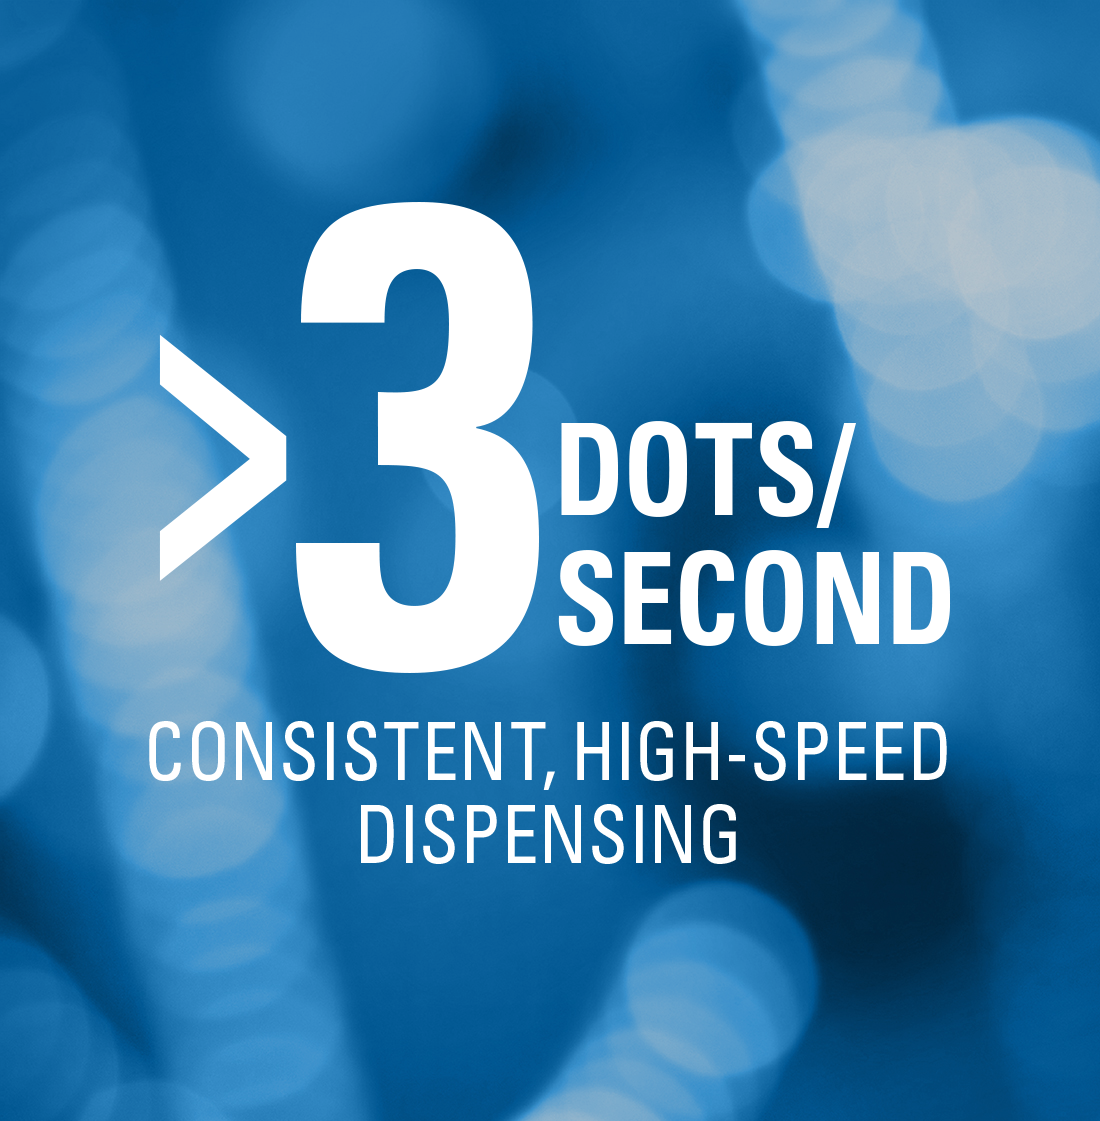 >3 dots/second Consistent, High-Speed Dispensing